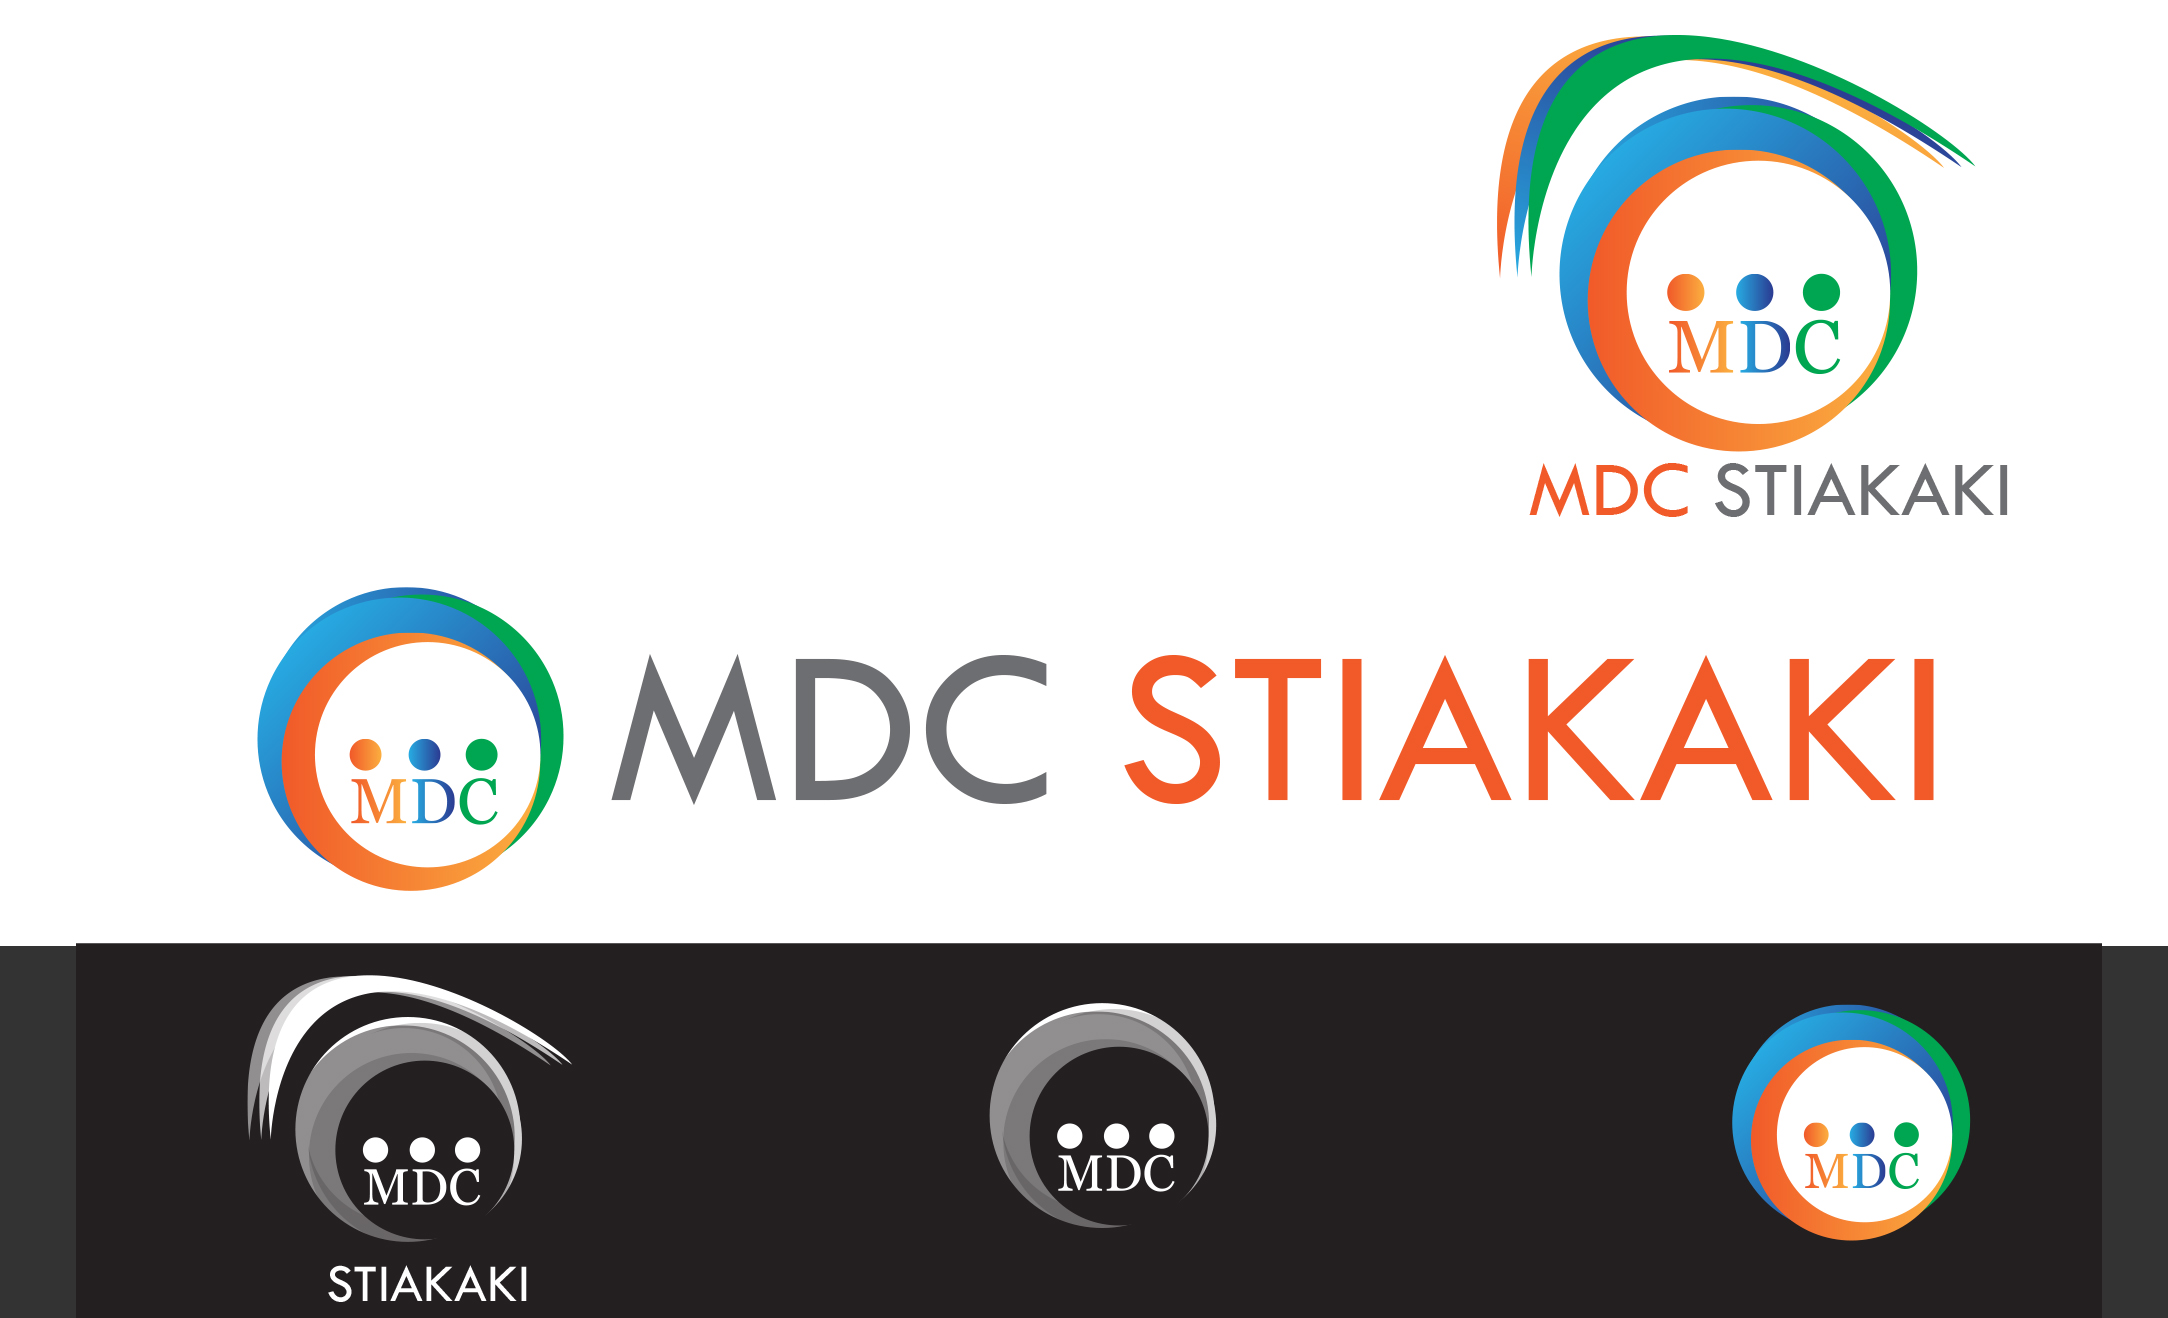 Logo Design by Leonard Anthony Alloso - Entry No. 70 in the Logo Design Contest Unique Logo Design Wanted for MDC STIAKAKIS.